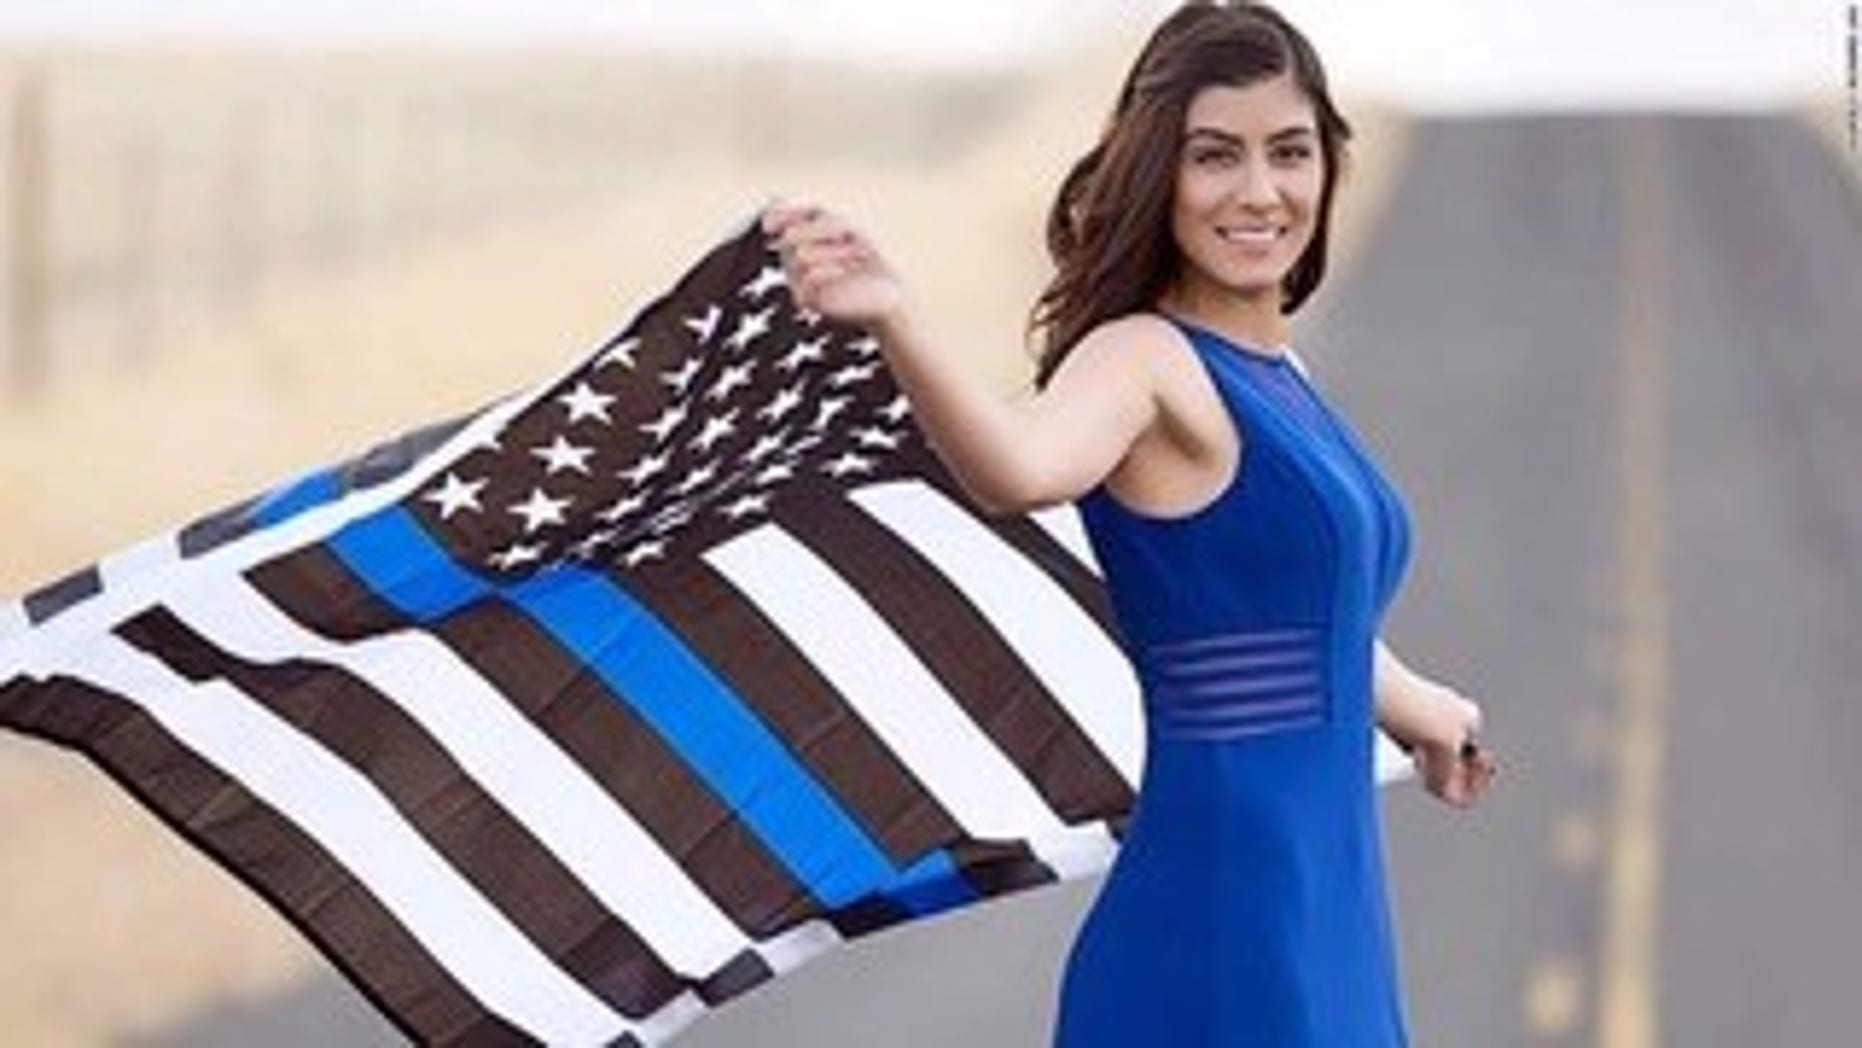 Battled California police, Natalie Corona, in a 2016 photo film containing a thin blue line flag.